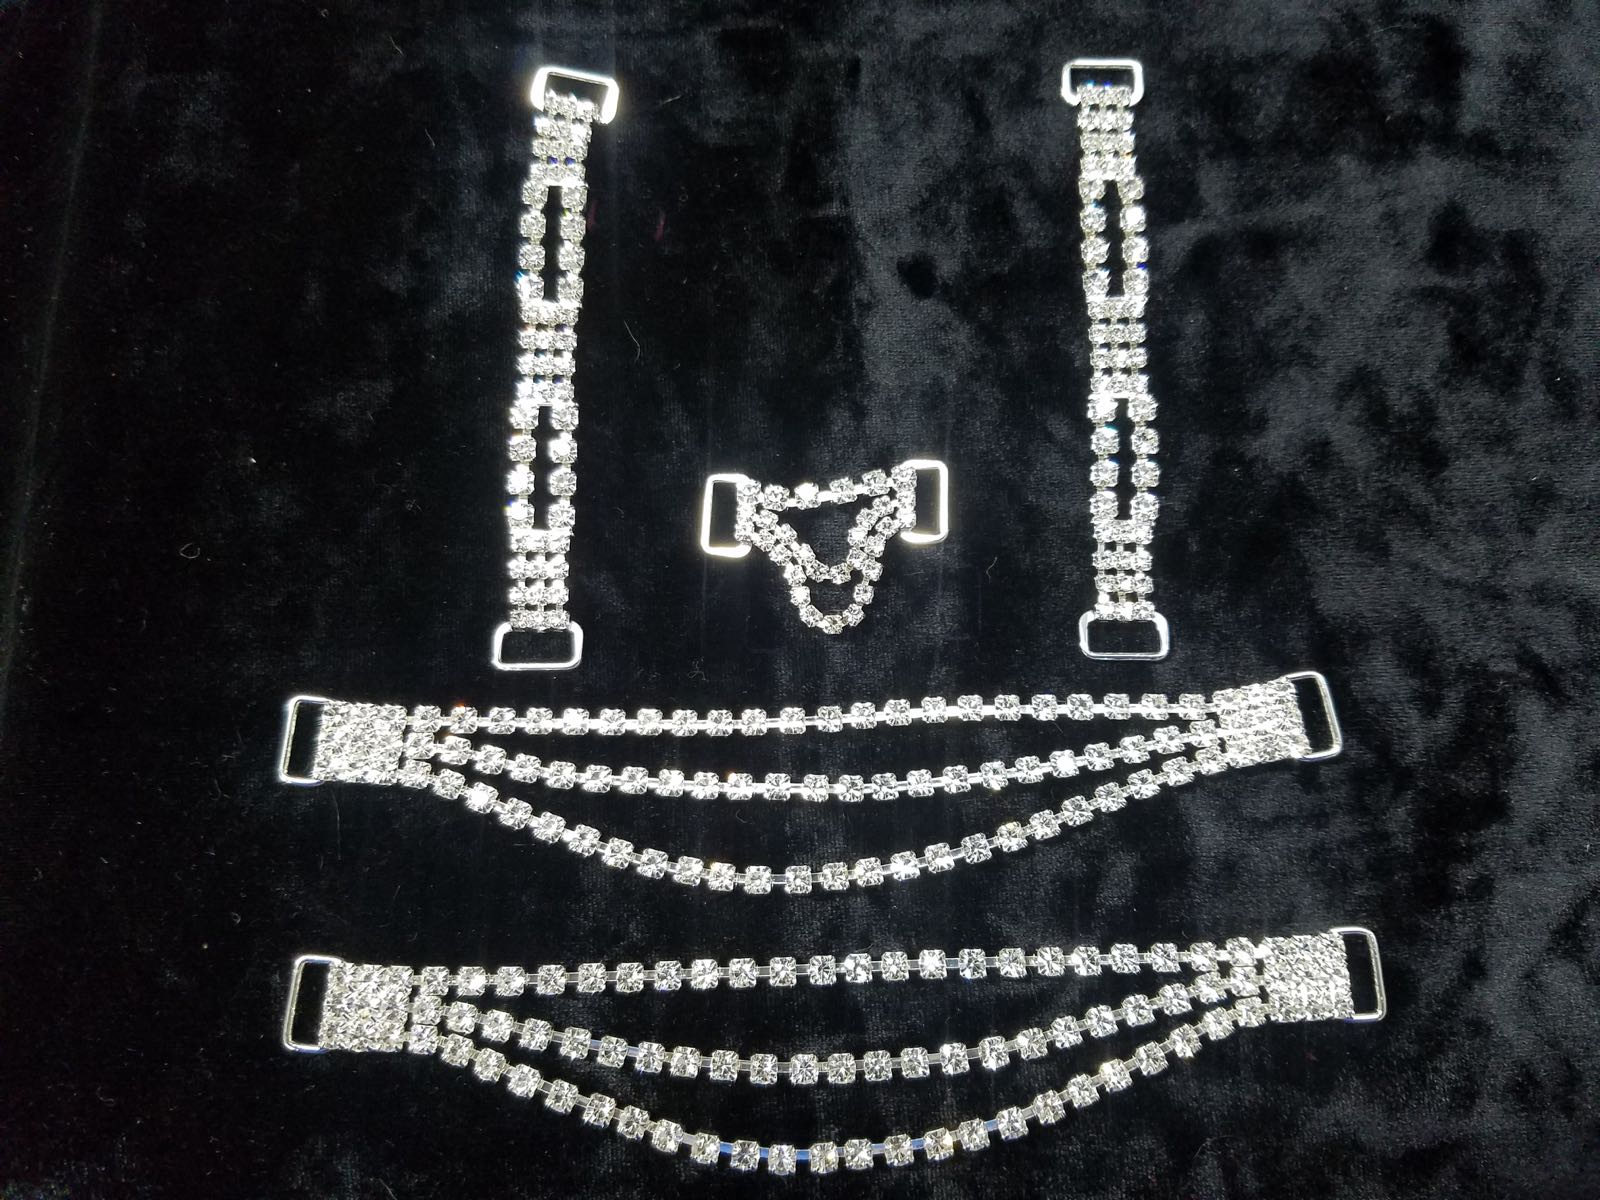 Set J, Silver with clear crystals, $45.00